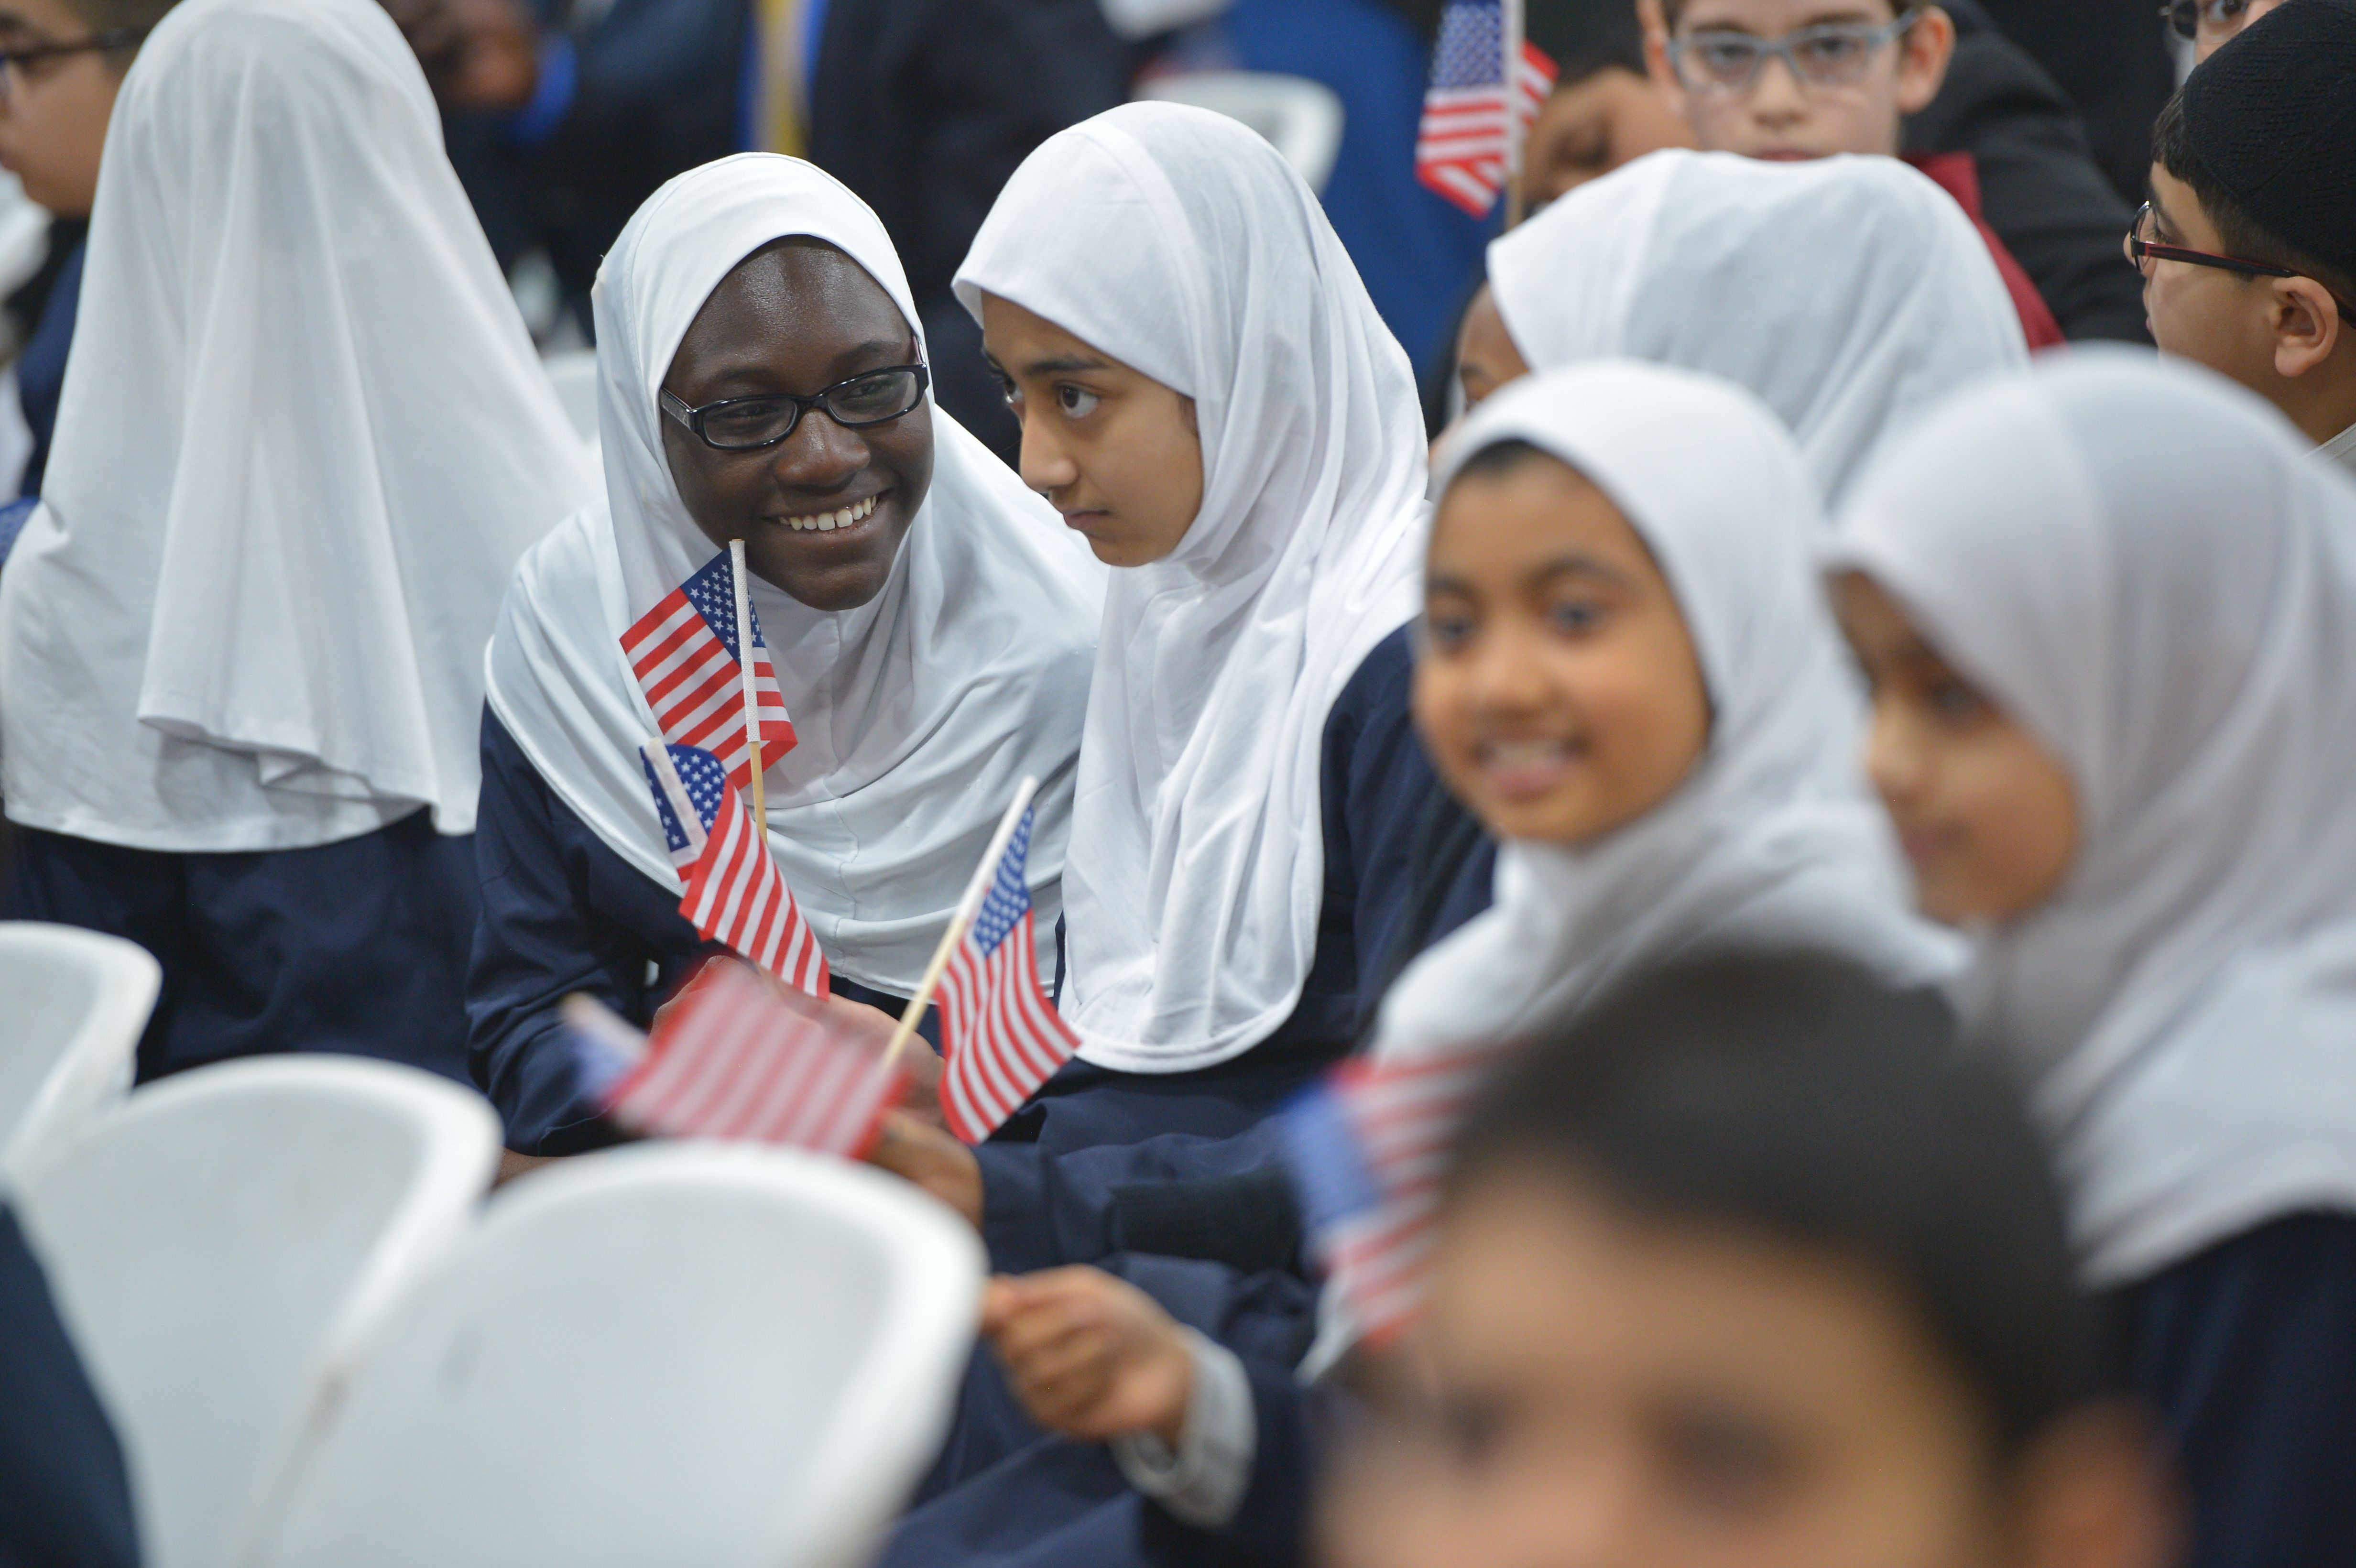 Girls hold US flags while waiting for US President Barack Obama after he spoke at the Islamic Society of Baltimore, in Windsor Mill, Maryland on February 3, 2016. / AFP / Mandel Ngan        (Photo credit should read MANDEL NGAN/AFP/Getty Images)